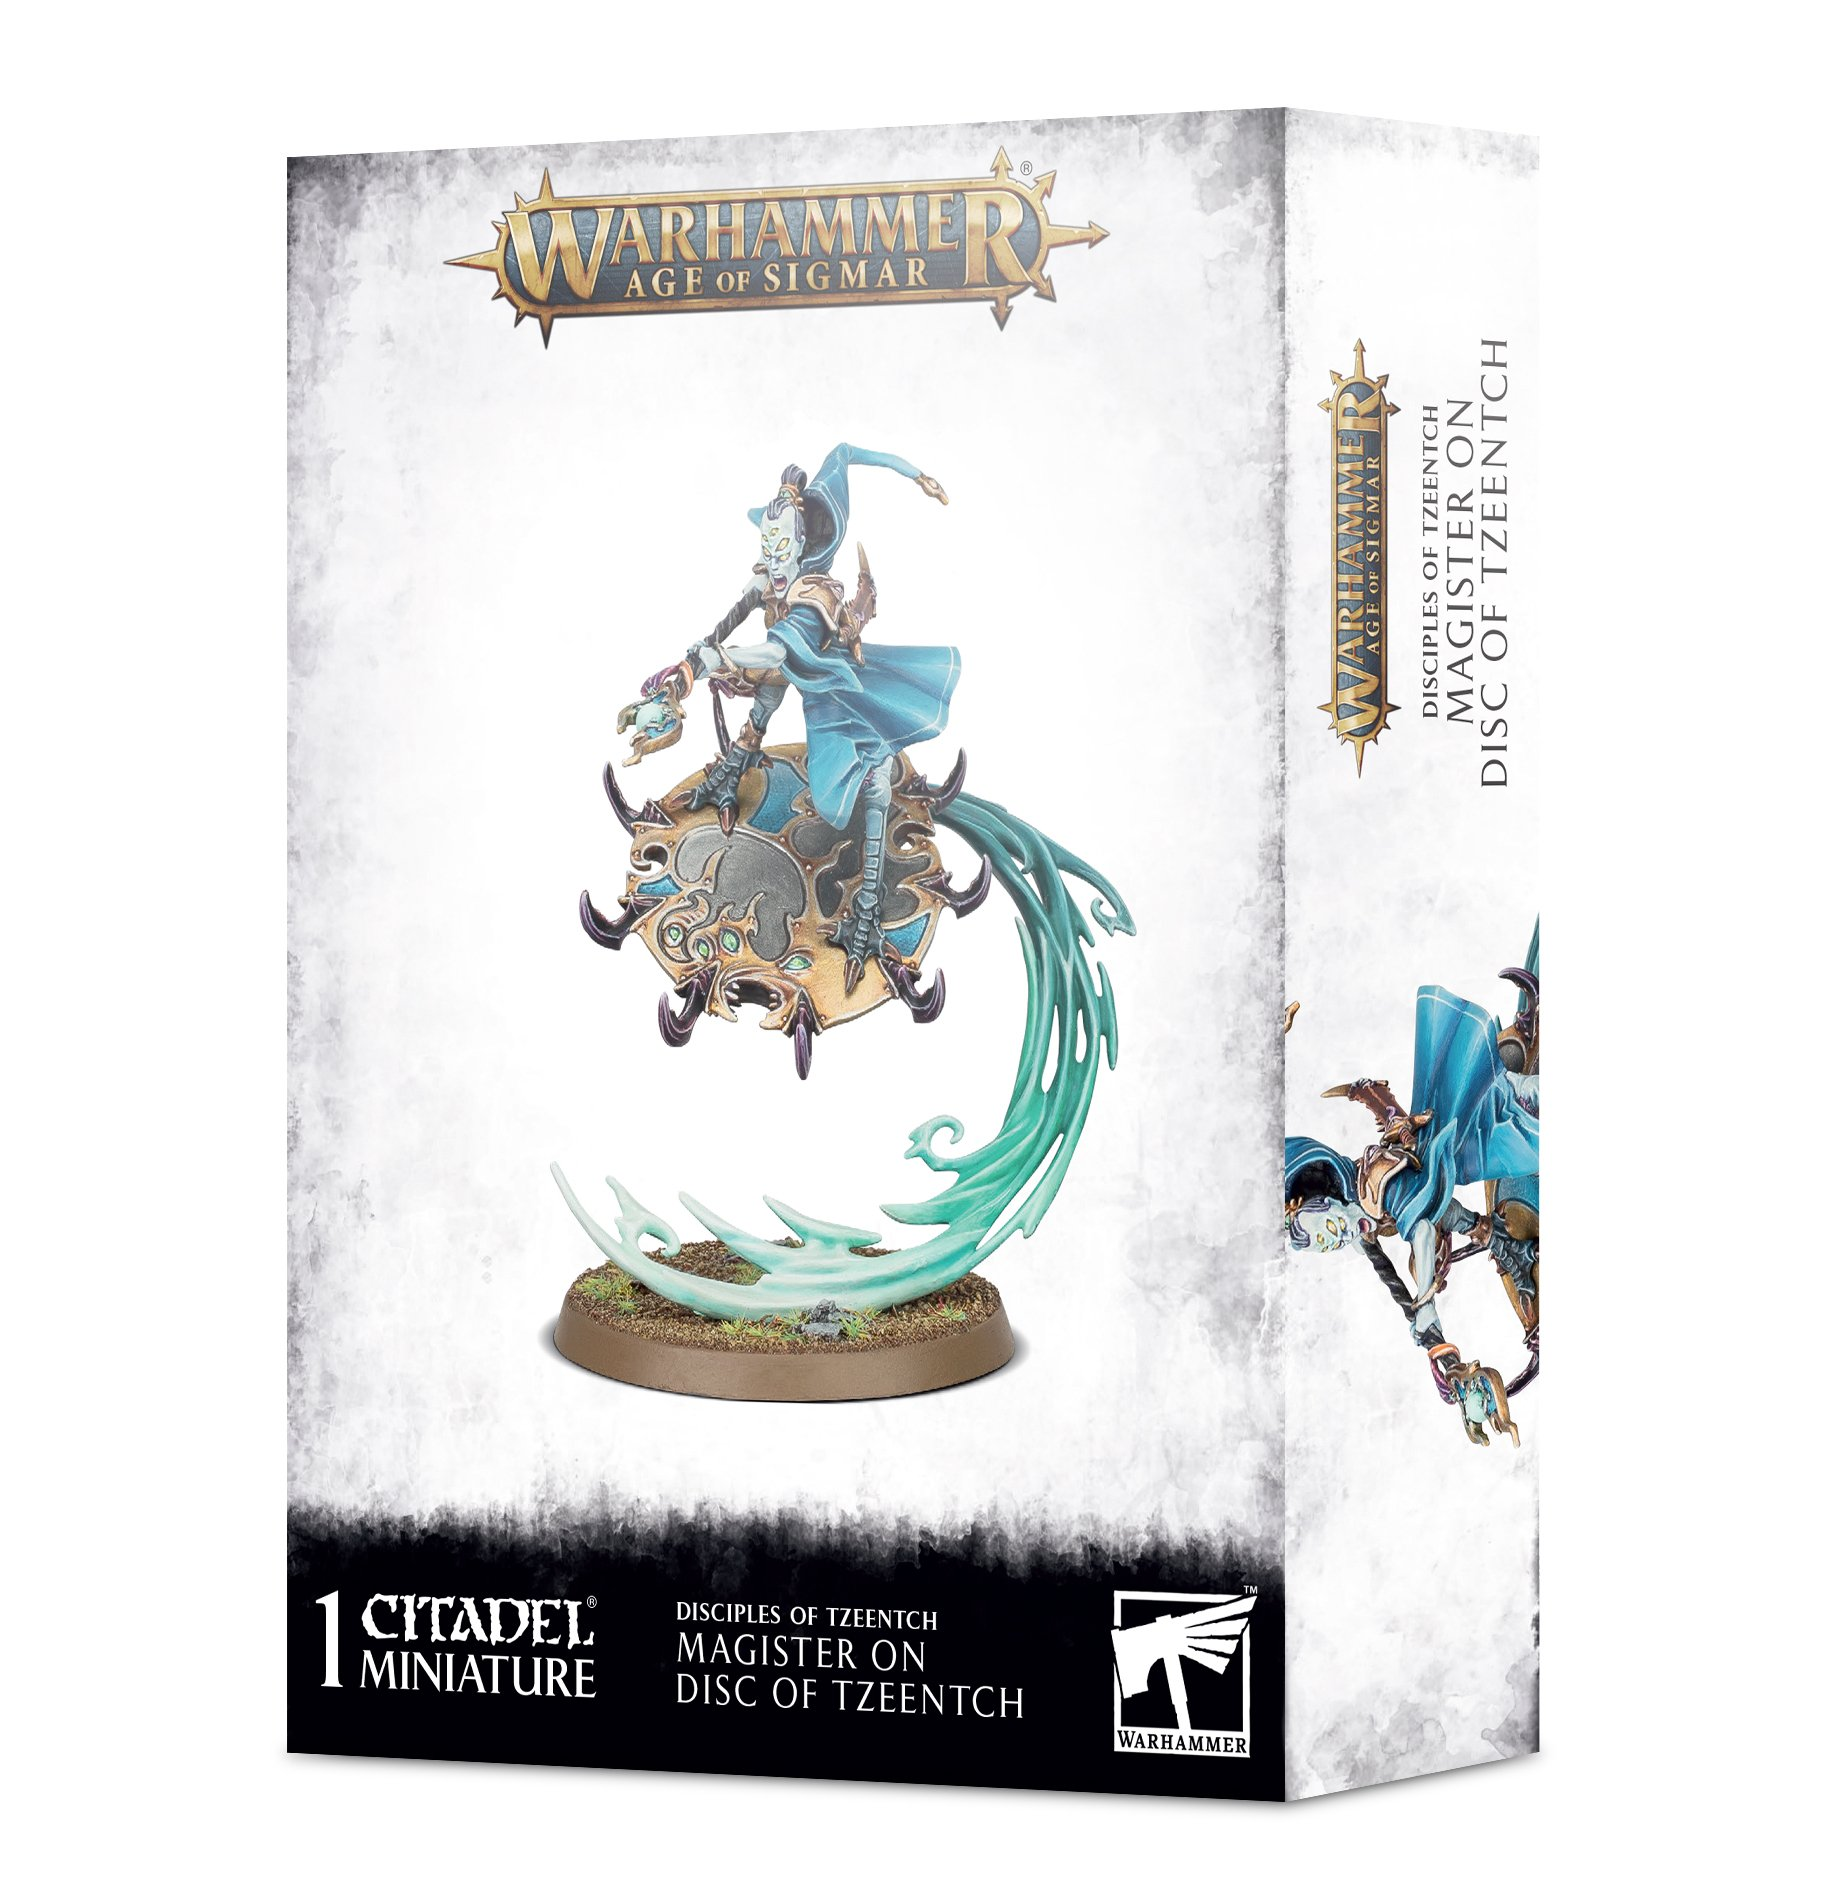 Warhammer Age Of Sigmar: Disciples of Tzeentch: Magister on Disc of Tzeentch